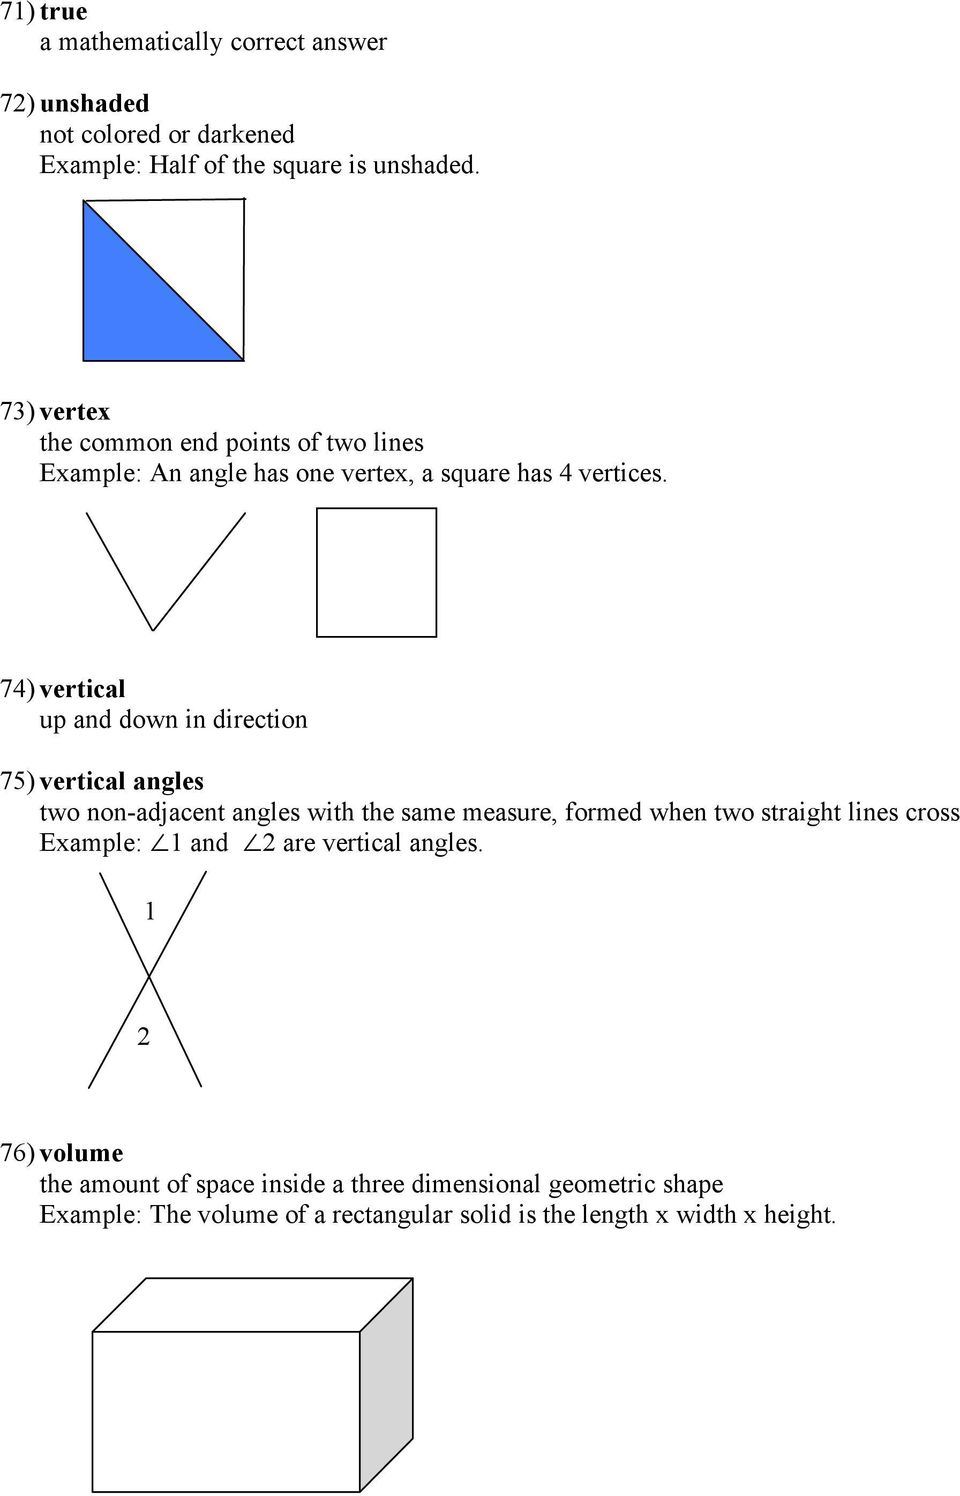 74) vertical up and down in direction 75) vertical angles two non-adjacent angles with the same measure, formed when two straight lines